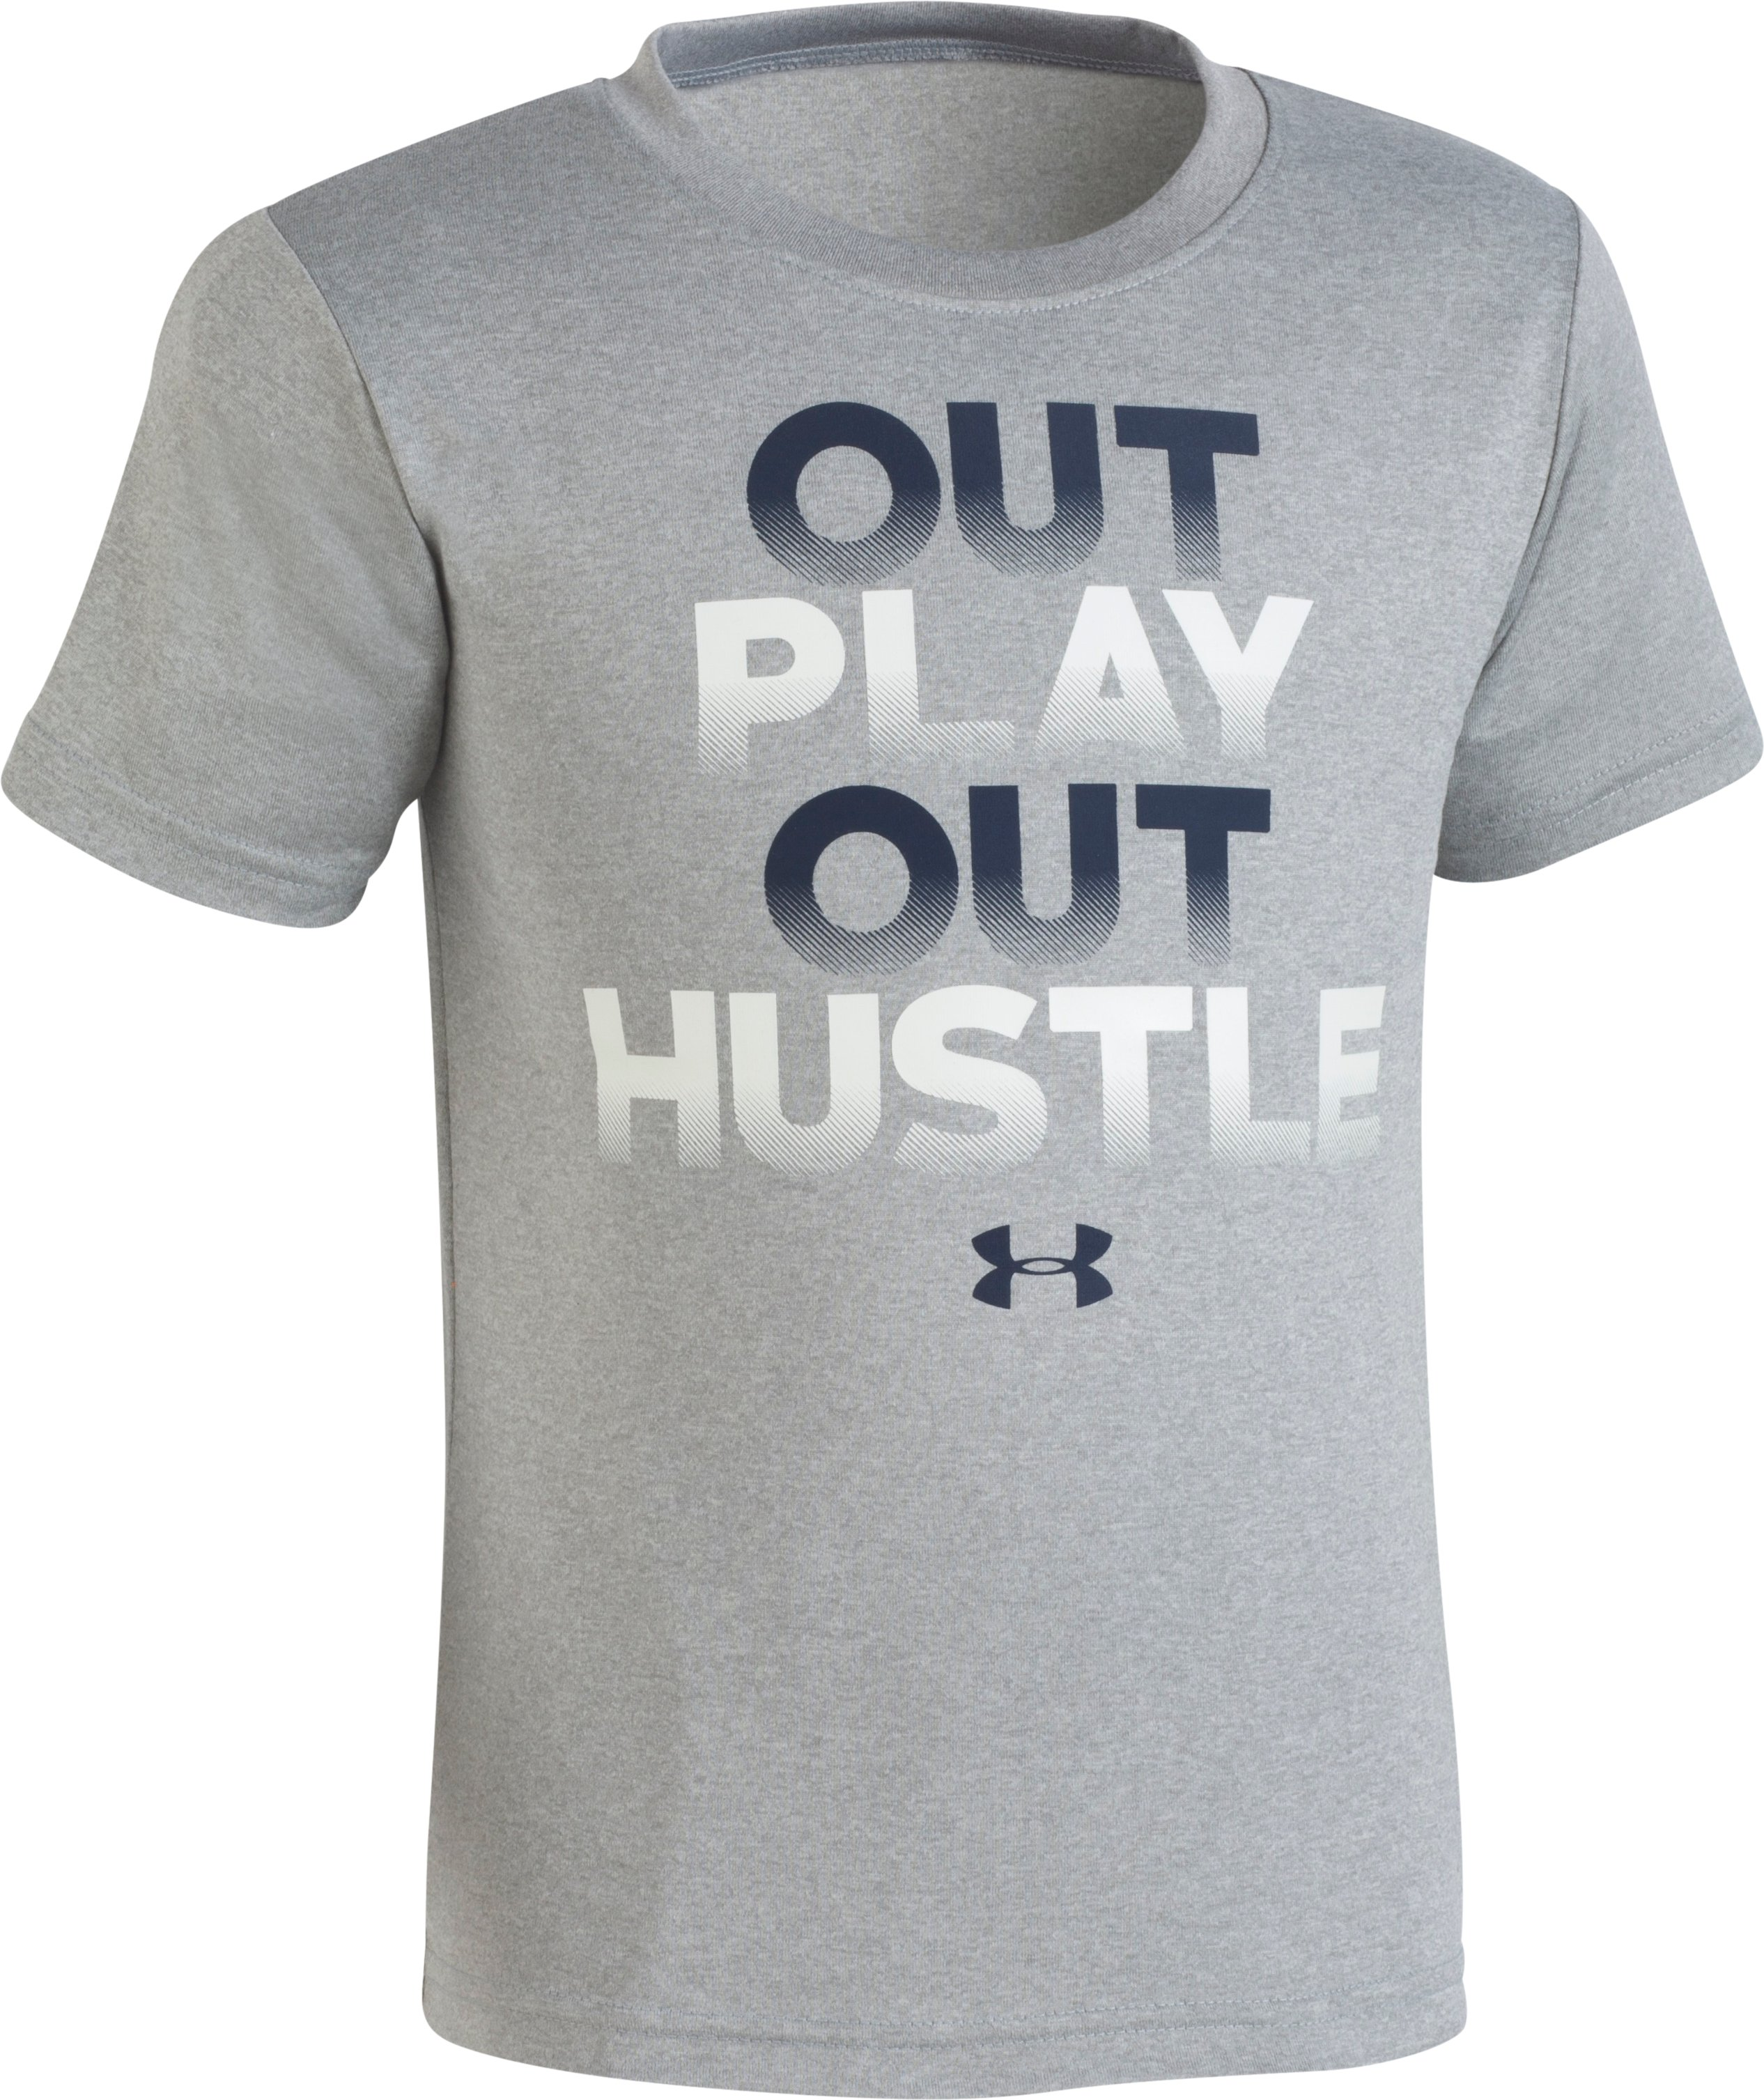 Boys' Pre-School UA Out Play Out Hustle Short Sleeve, STEEL MEDIUM HEATHER, zoomed